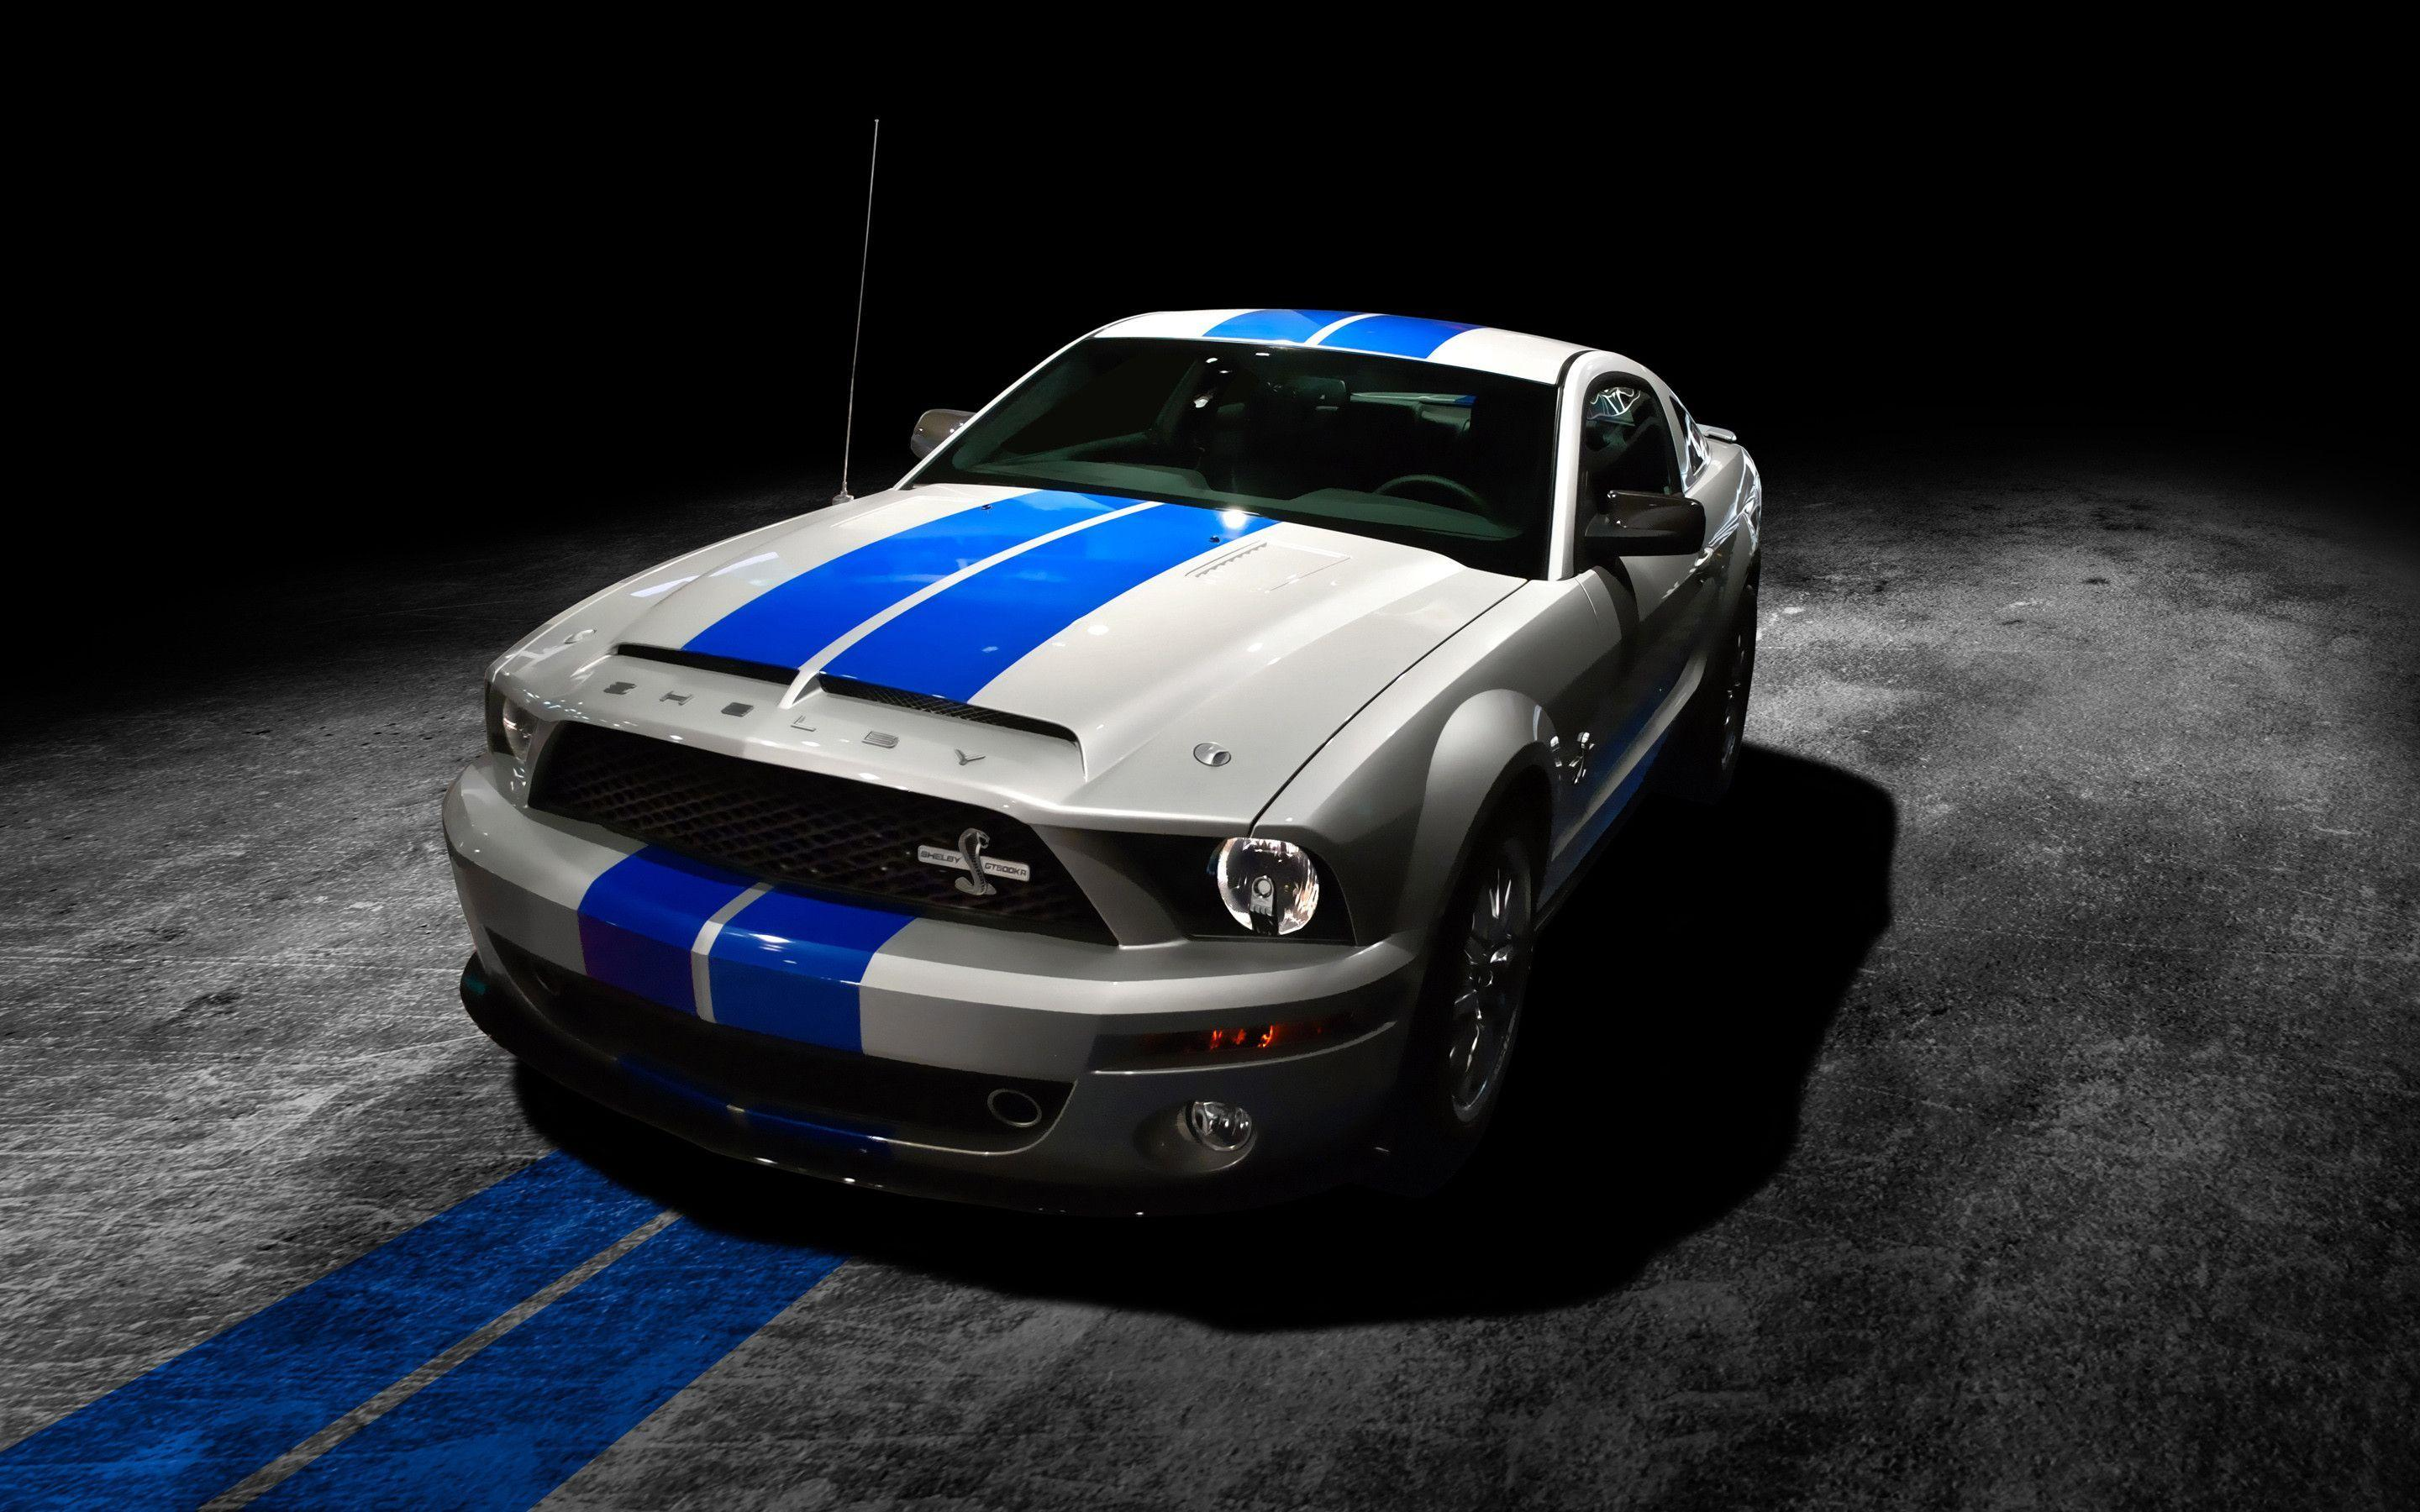 Ford Mustang Cars Wallpapers - Top Free